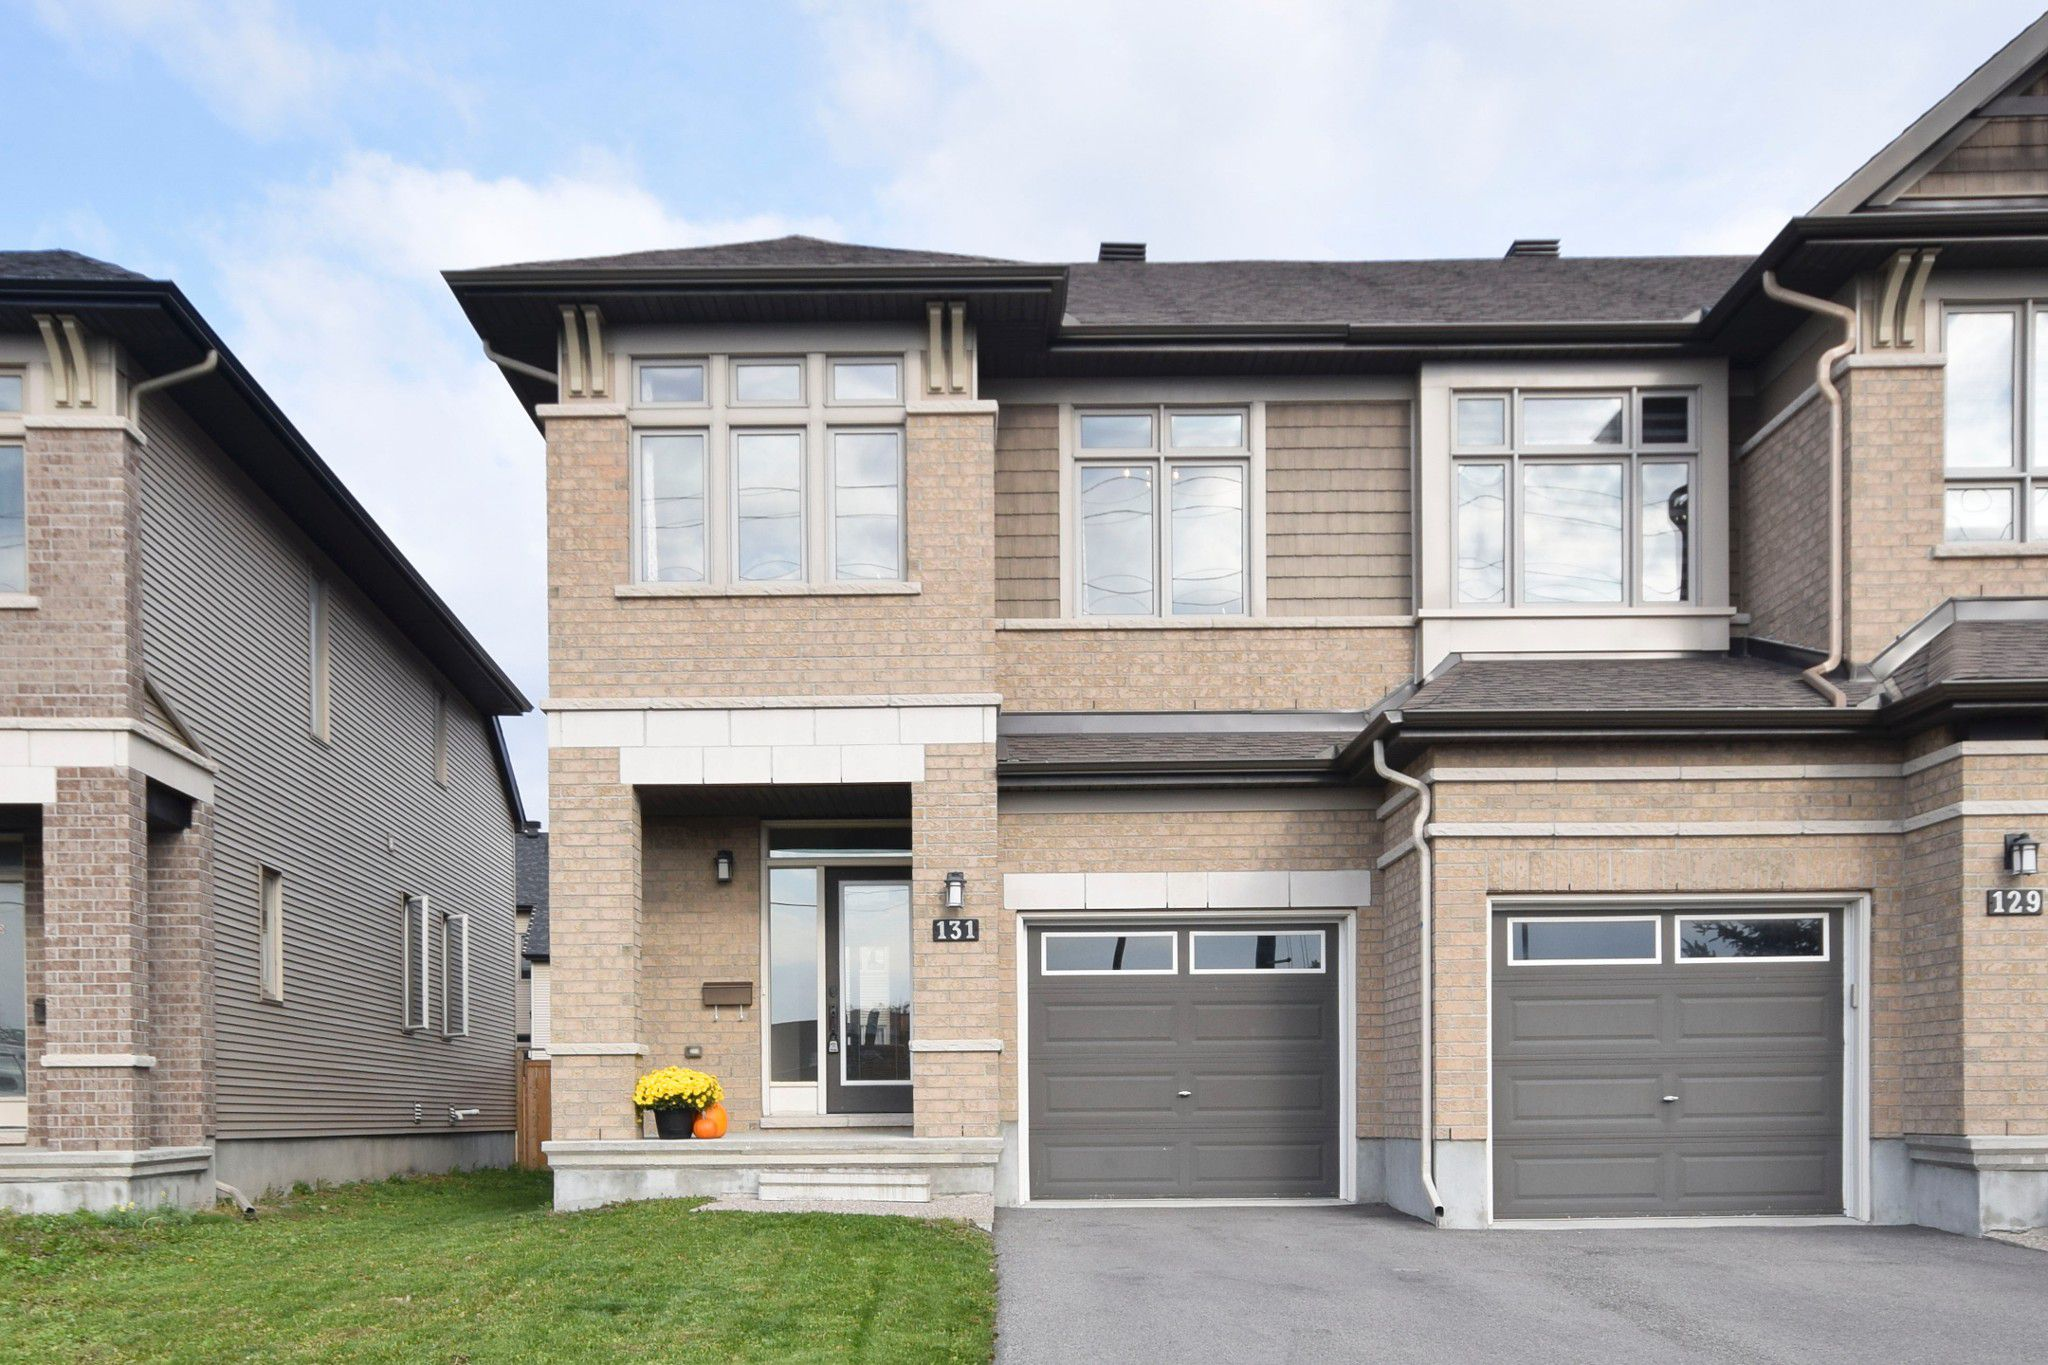 Photo 1: Photos: 131 Popplewell Crescent in Ottawa: Cedargrove / Fraserdale House for sale (Barrhaven)  : MLS®# 1130335